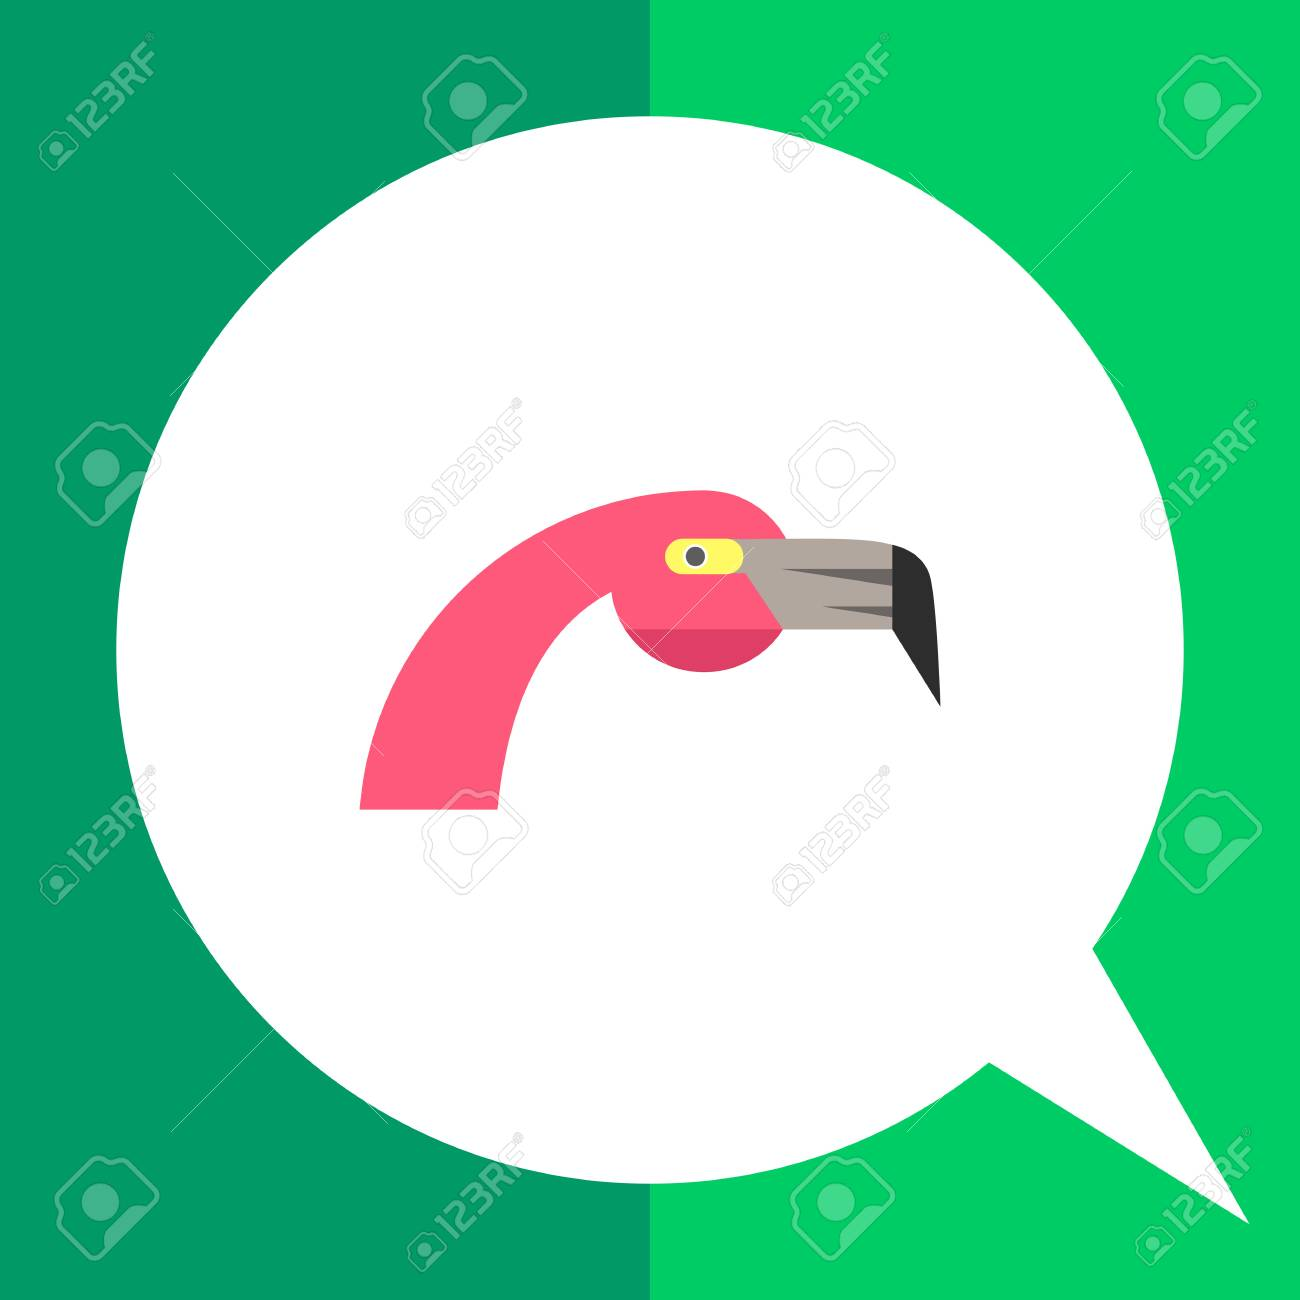 Multicolored vector icon of pink flamingo head, side view - 60939352